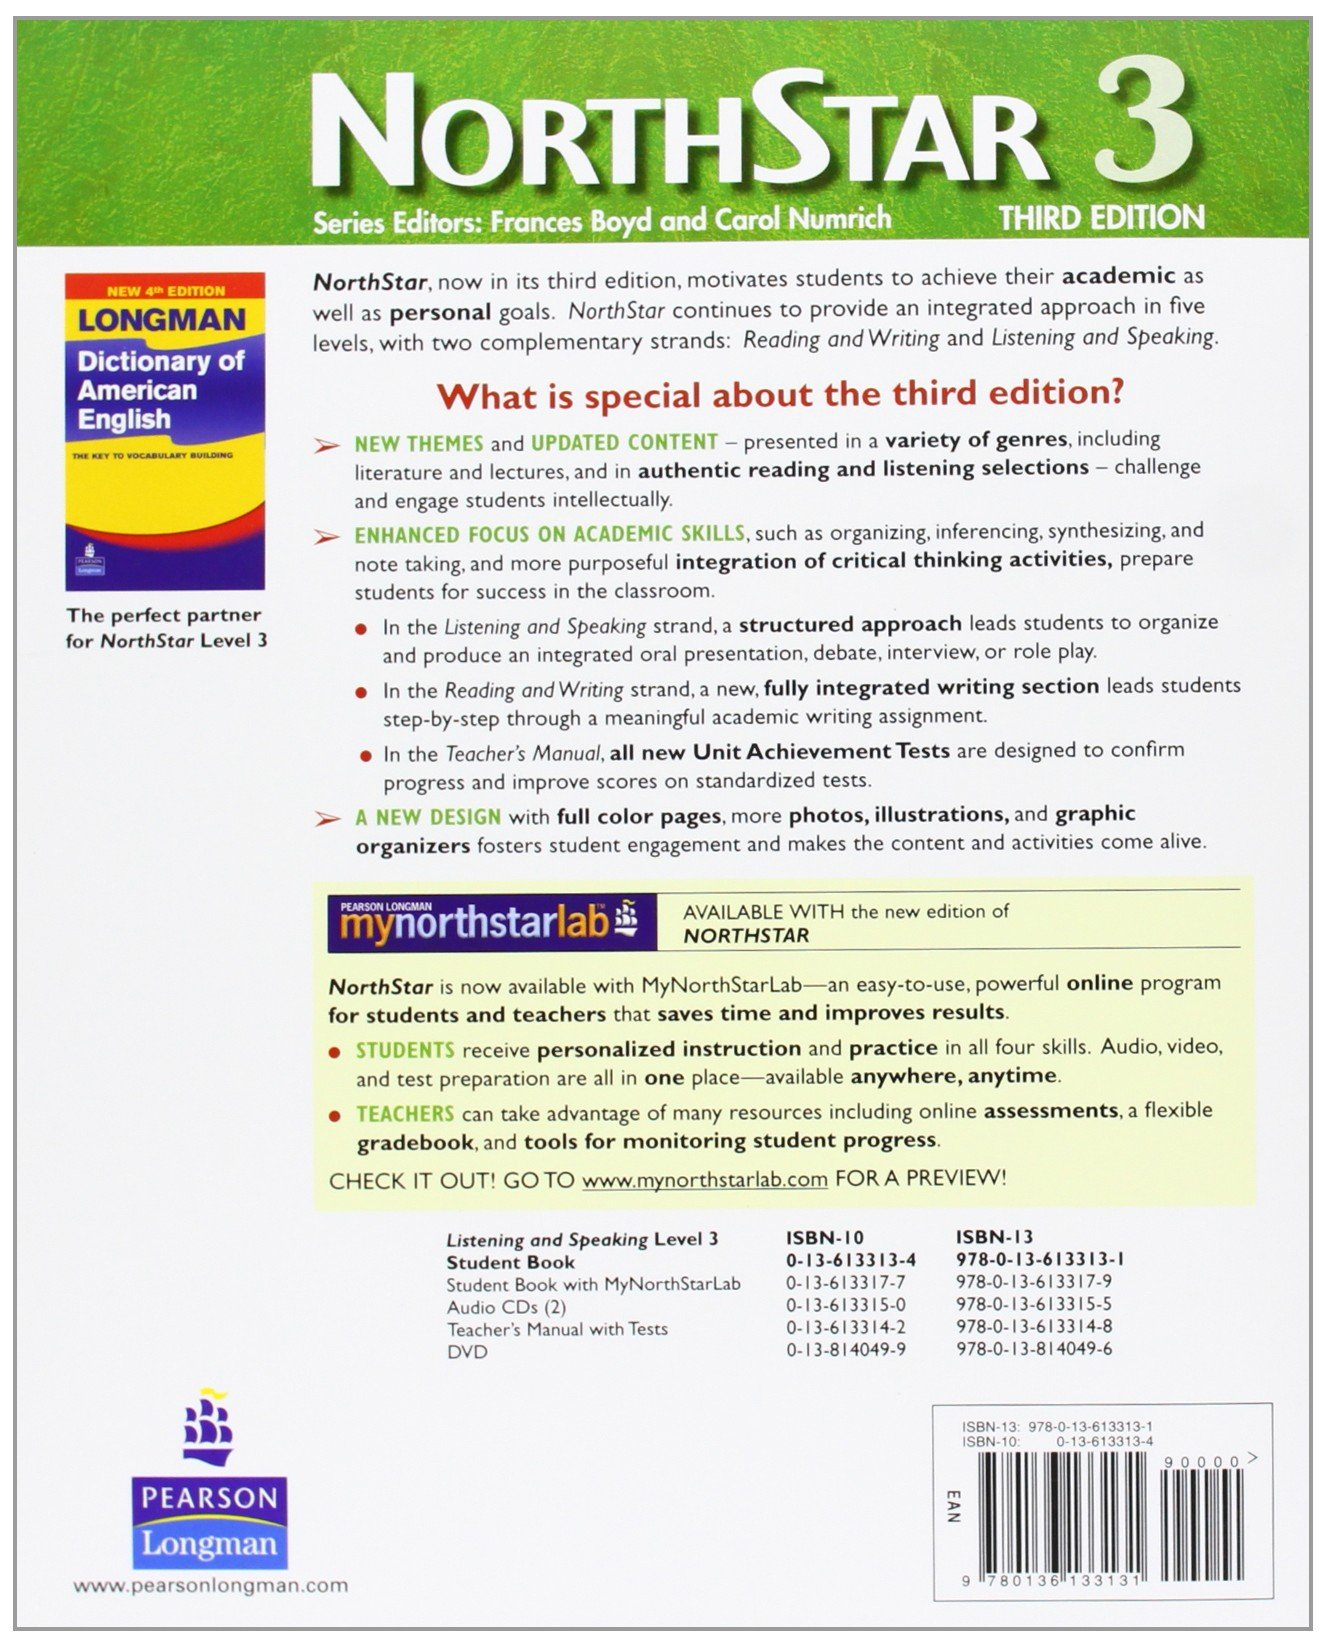 NorthStar, Listening and Speaking 3 (Student Book alone): Student Book  Level 3 (Go for English): Amazon.co.uk: Helen Solorzano, Jennifer P.L.  Schmidt: ...